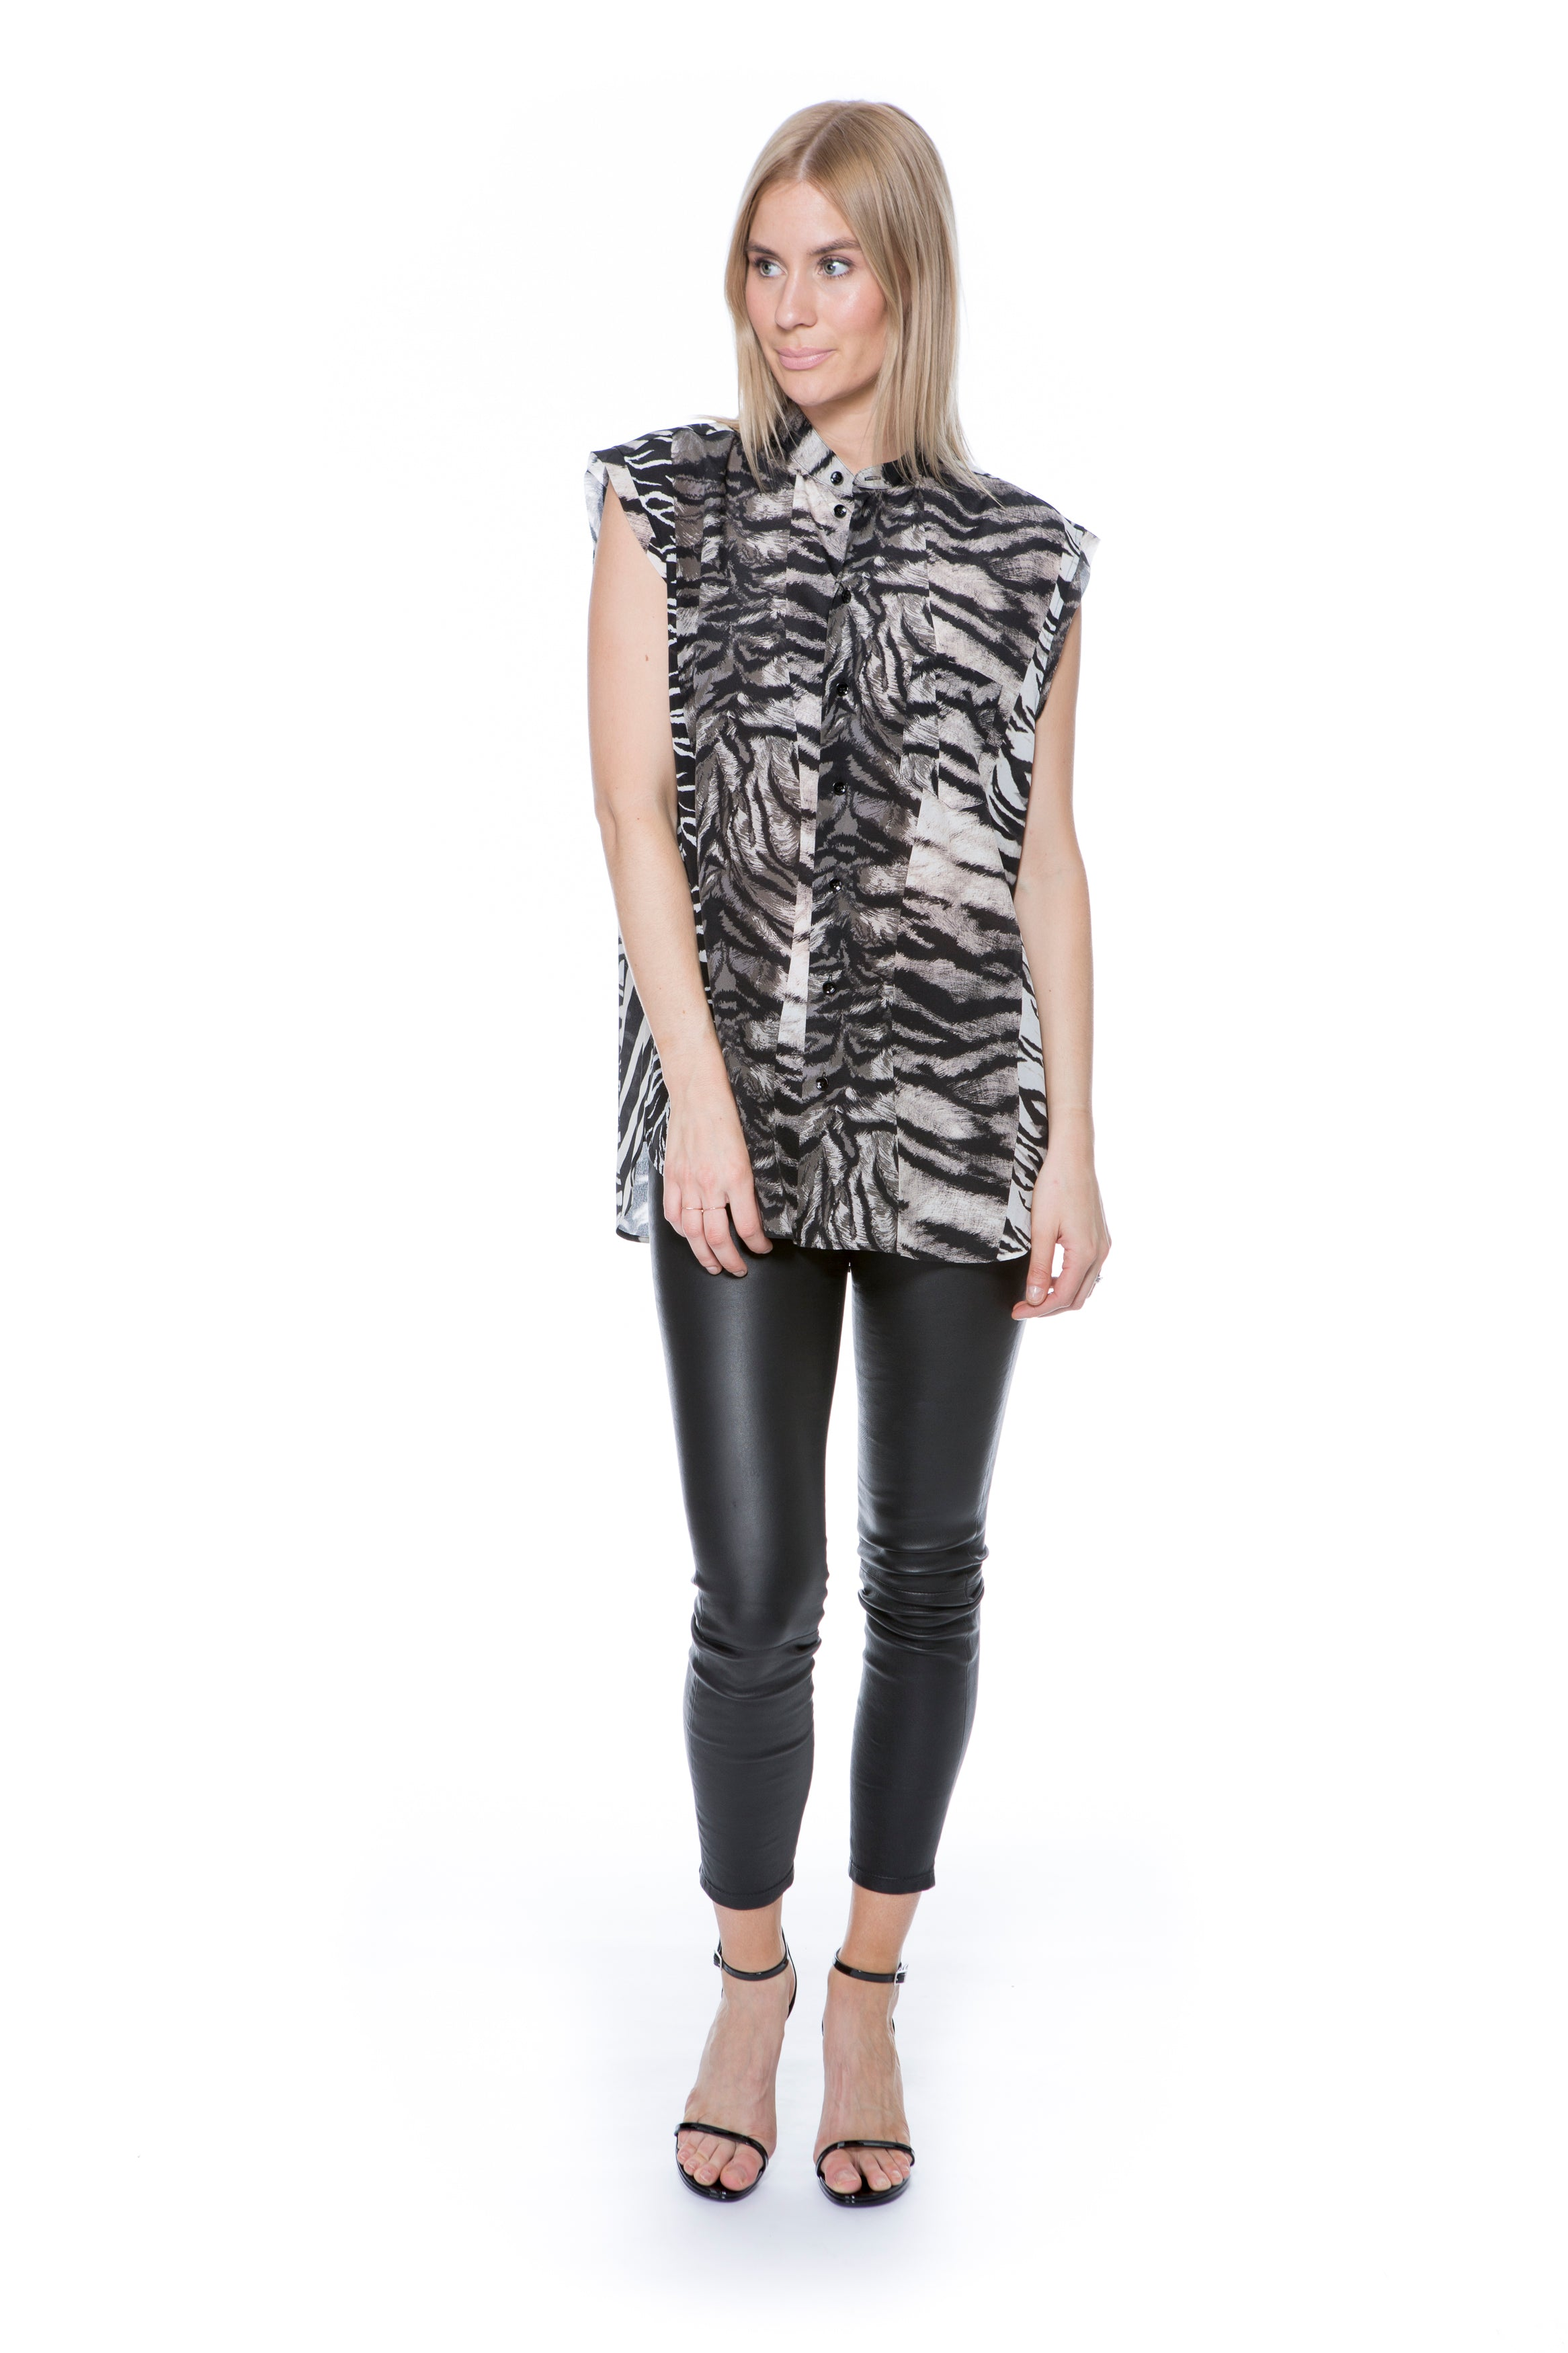 SLEEVELESS SHIRT ANIMAL PRINT